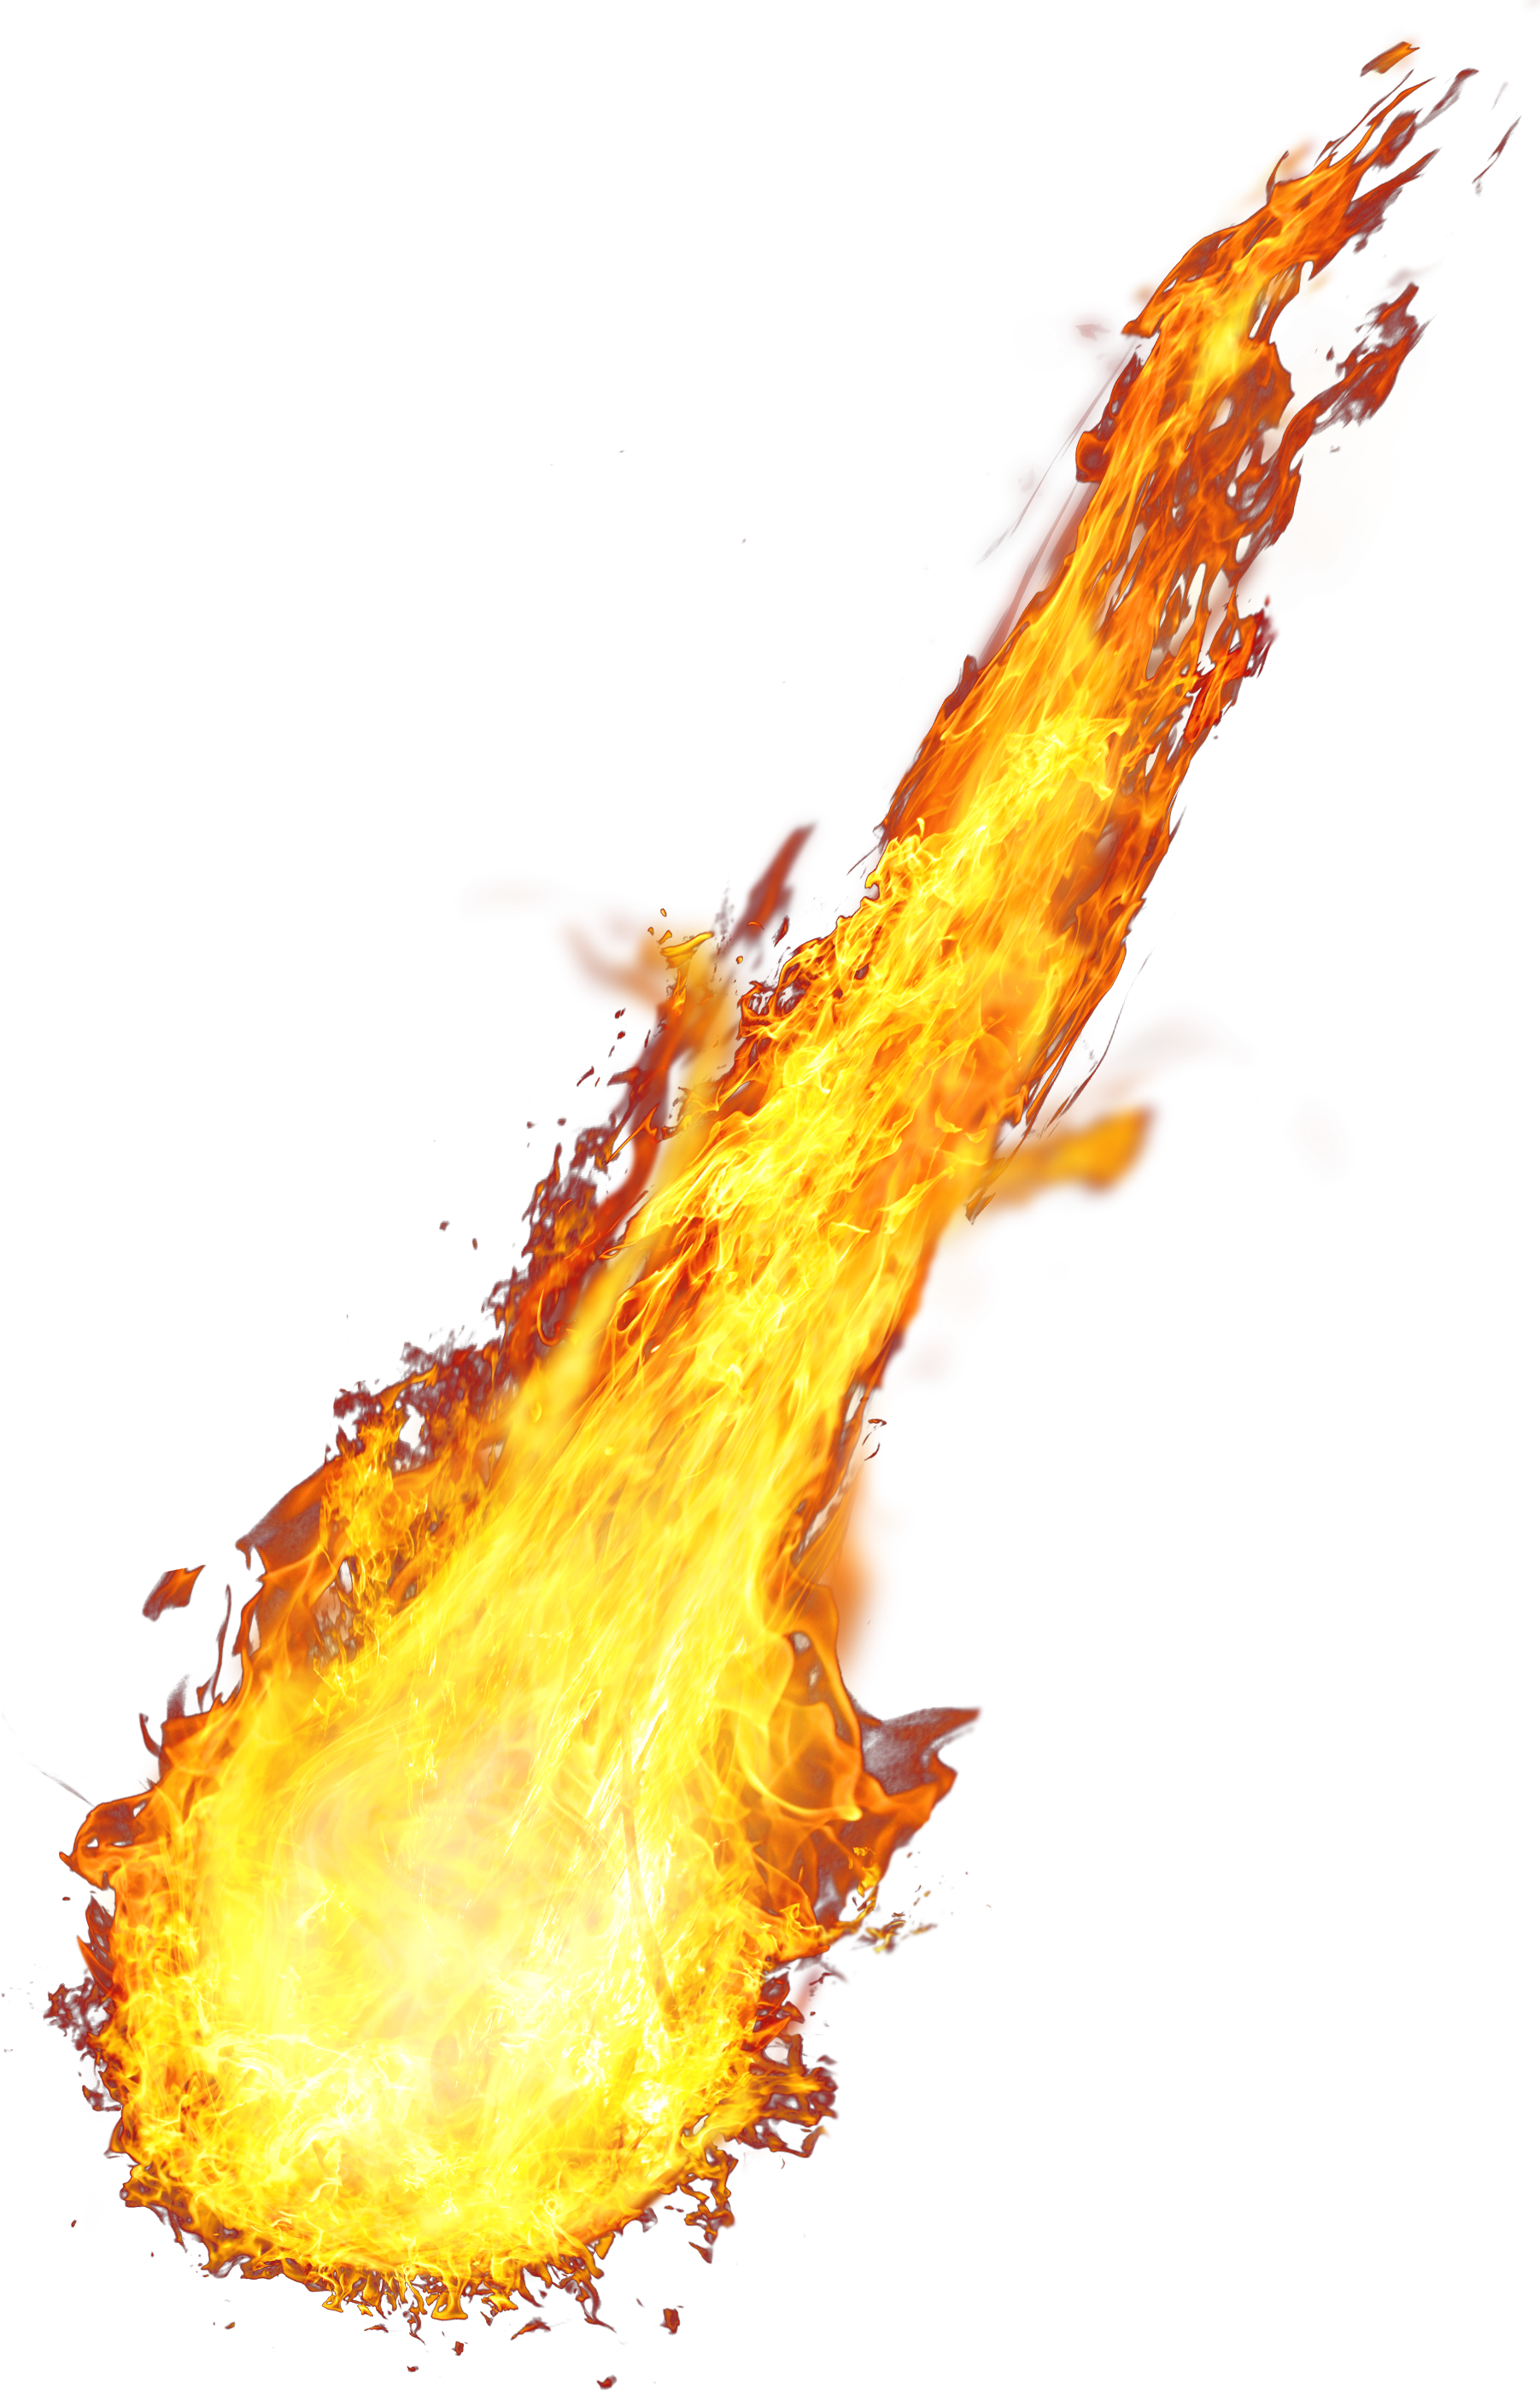 Asteroid clipart fire. Clip art transparent free